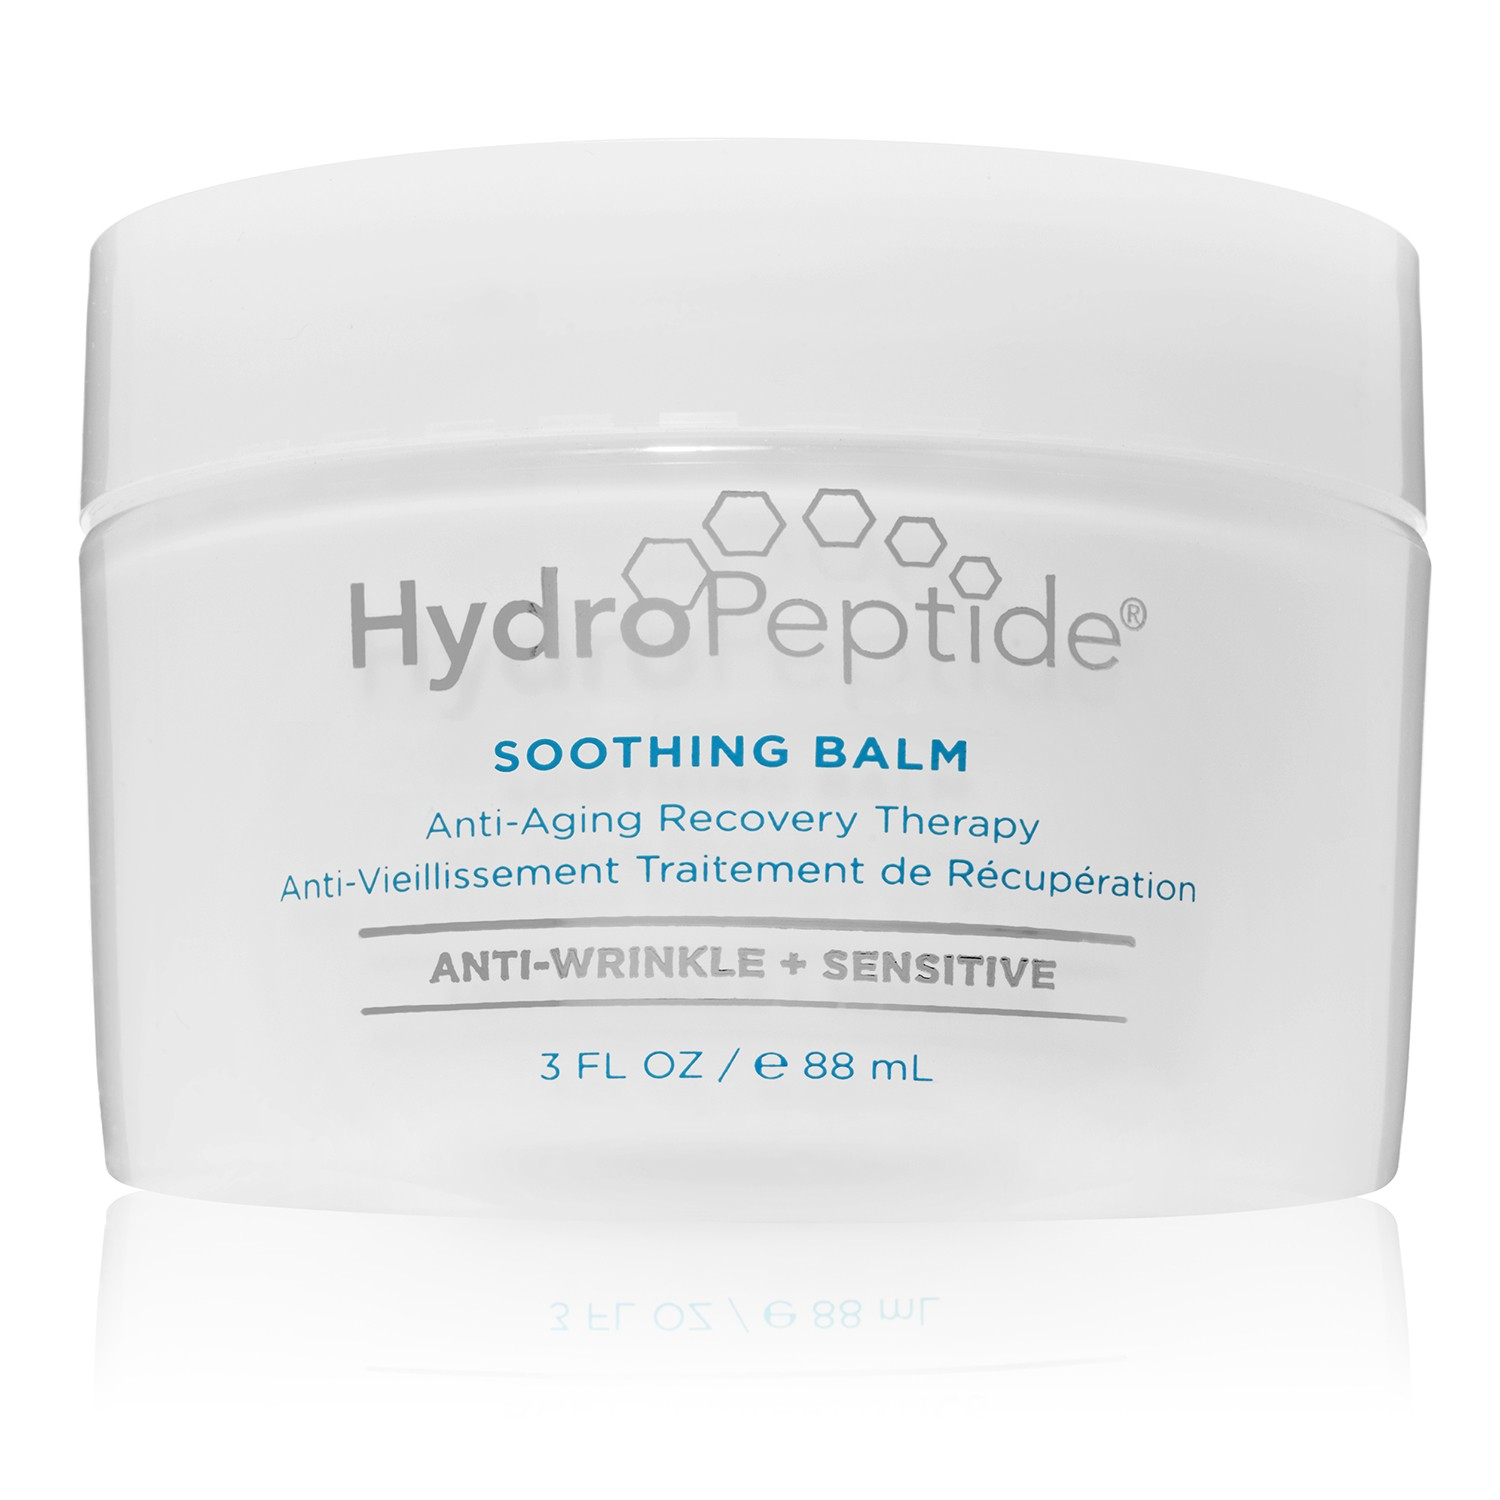 HydroPeptide SOOTHING BALM Anti-Aging Recovery Therapy (3.0 fl oz / 88 ml)